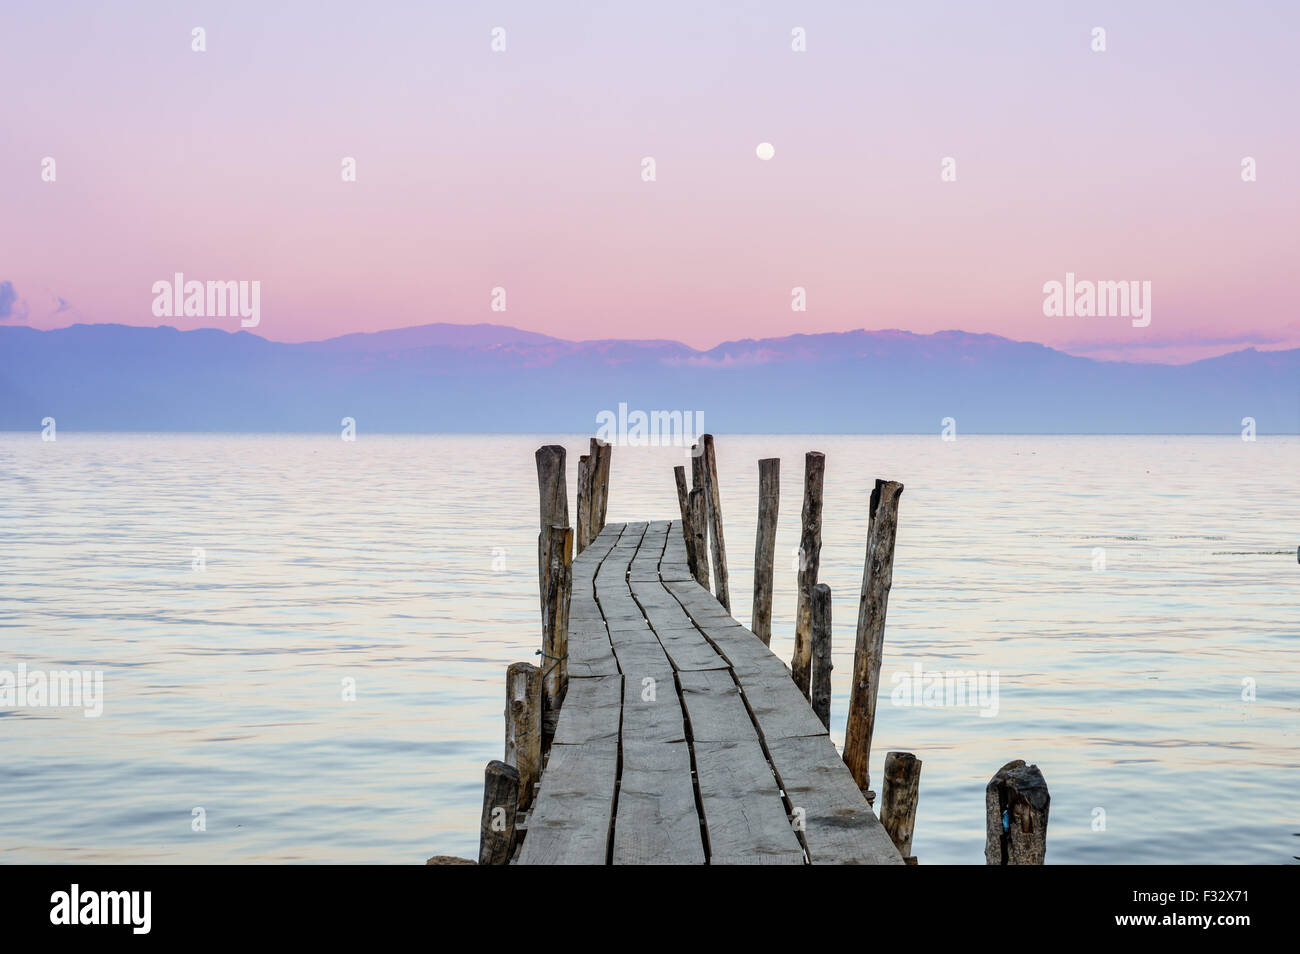 Little wooden boat dock with the pink sunset sky on the background in Lake Atitlan, Guatemala - Stock Image